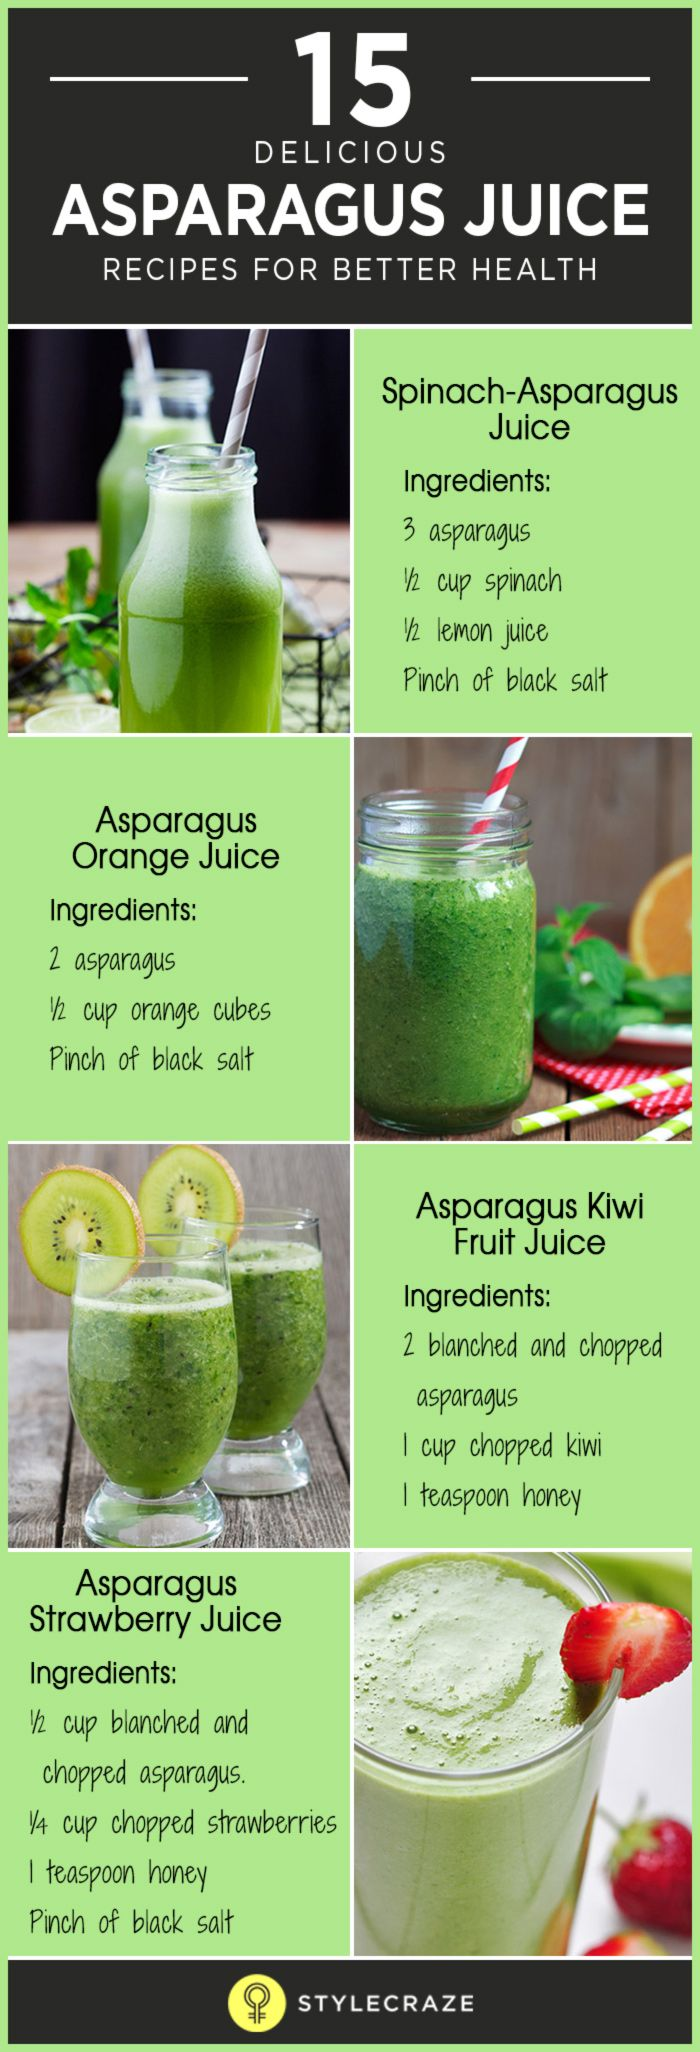 Bored of eating asparagus the same way—grilled, sauteed or blanched? Try juicing asparagus! I know it sounds bizaerre but juicing asparagus is the best way to reap its health benefits. I am not one of those who enjoys having food that is bland or leaves a bad taste in the mouth.